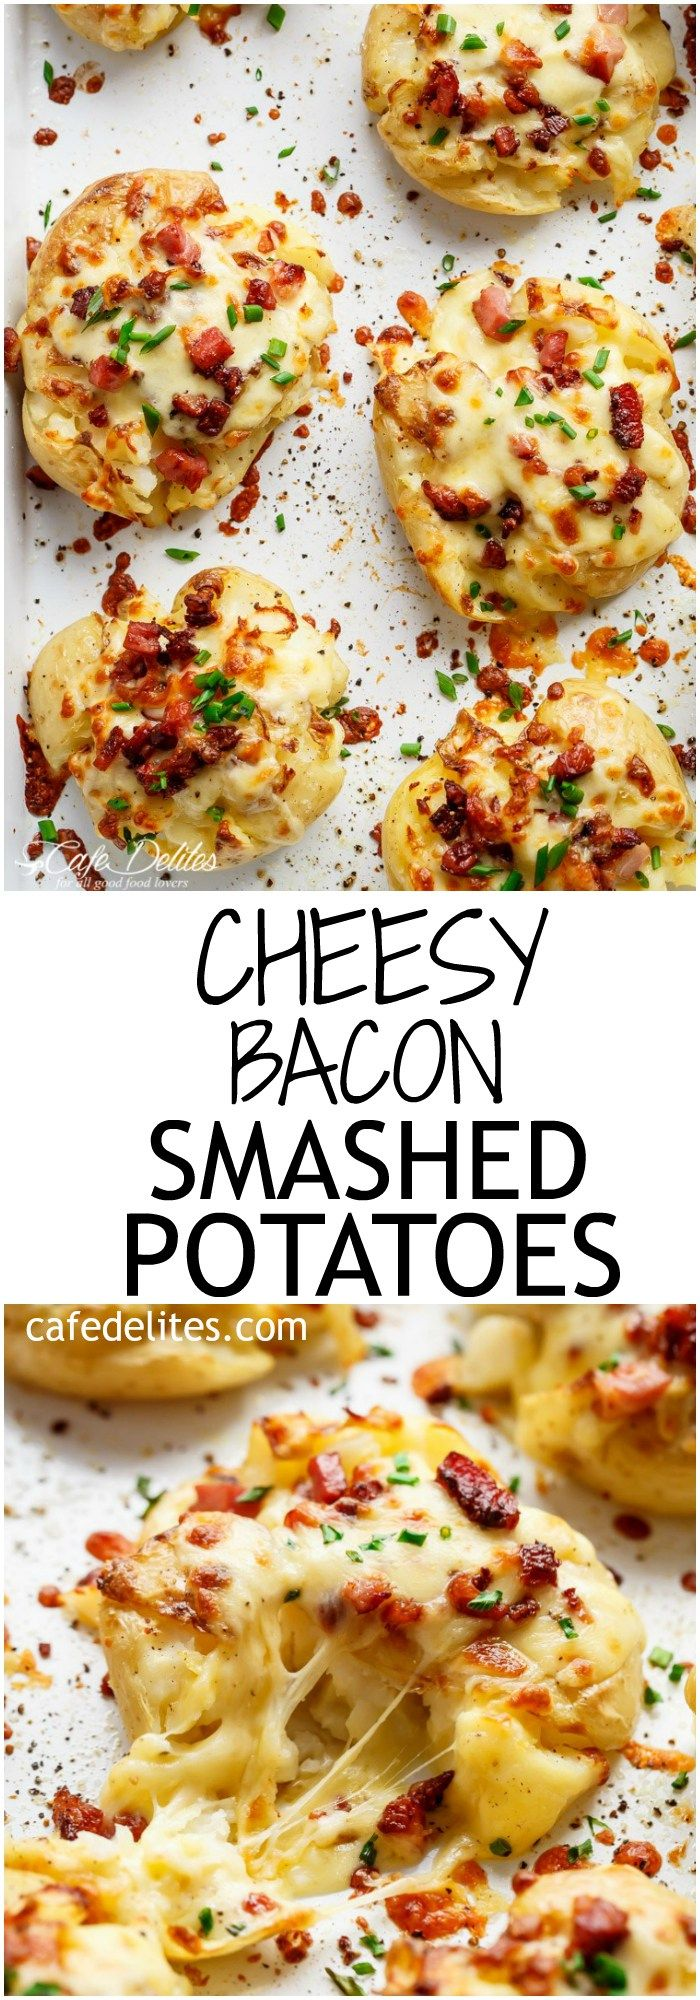 Crispy and Loaded Cheesy Bacon Smashed Potatoes with Chives and an Avocado Crema!   http://cafedelites.com